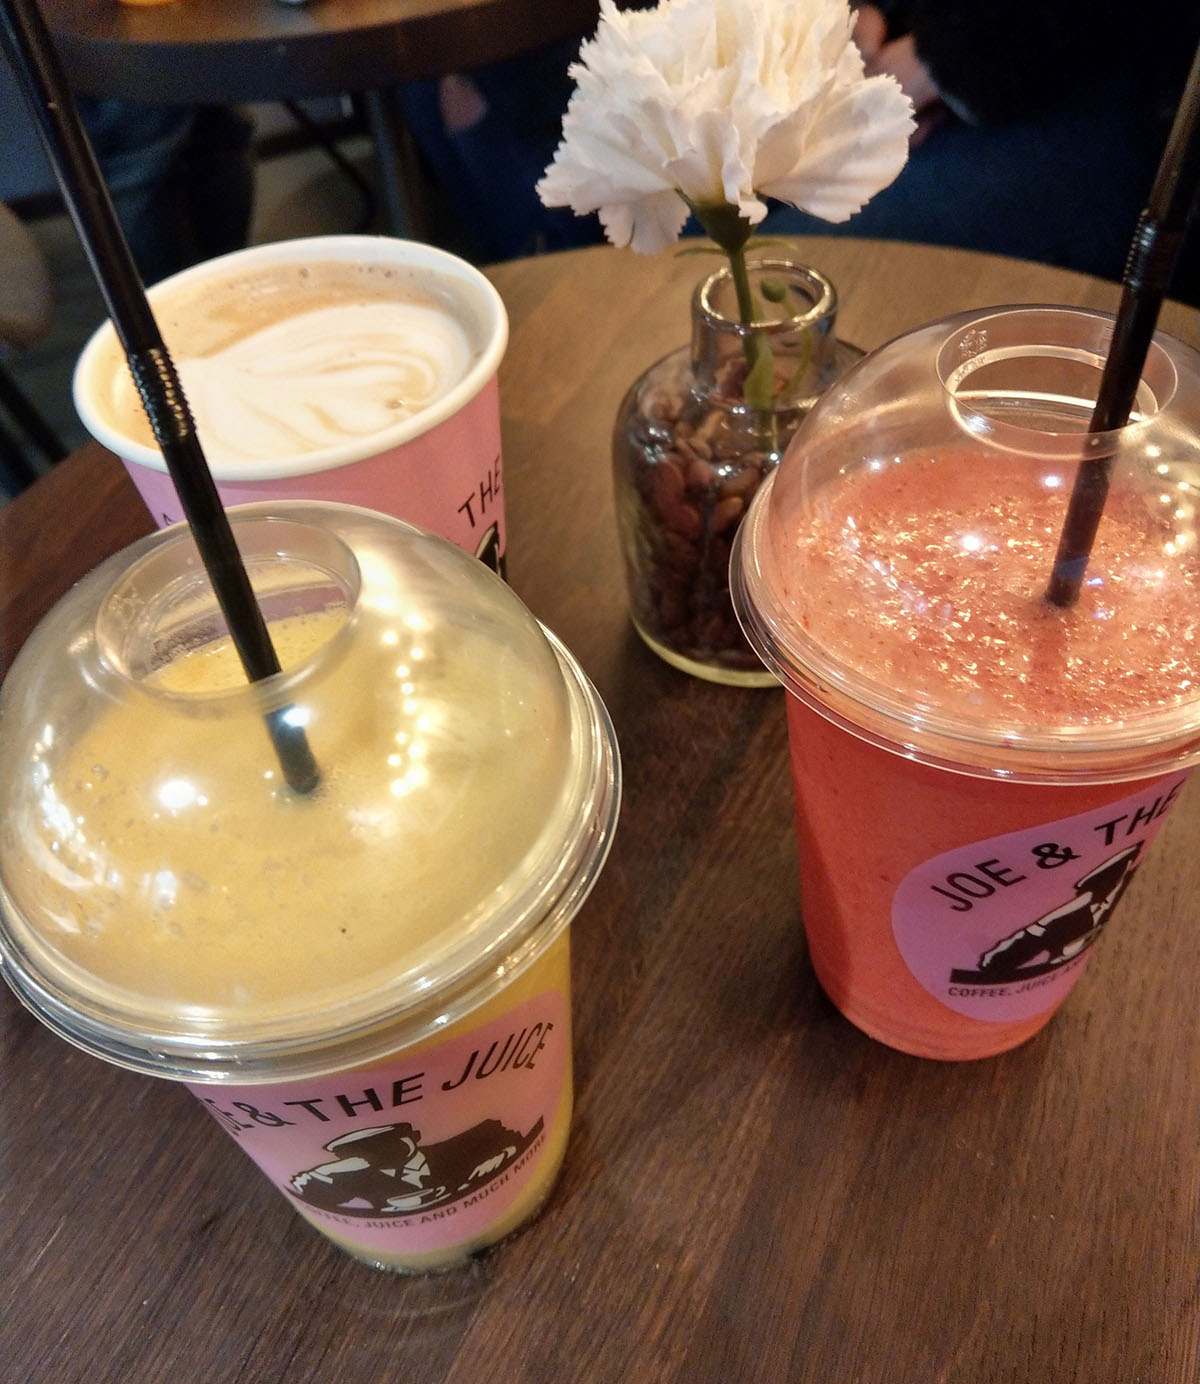 stockholm-joe-the-juice-dirk-menker